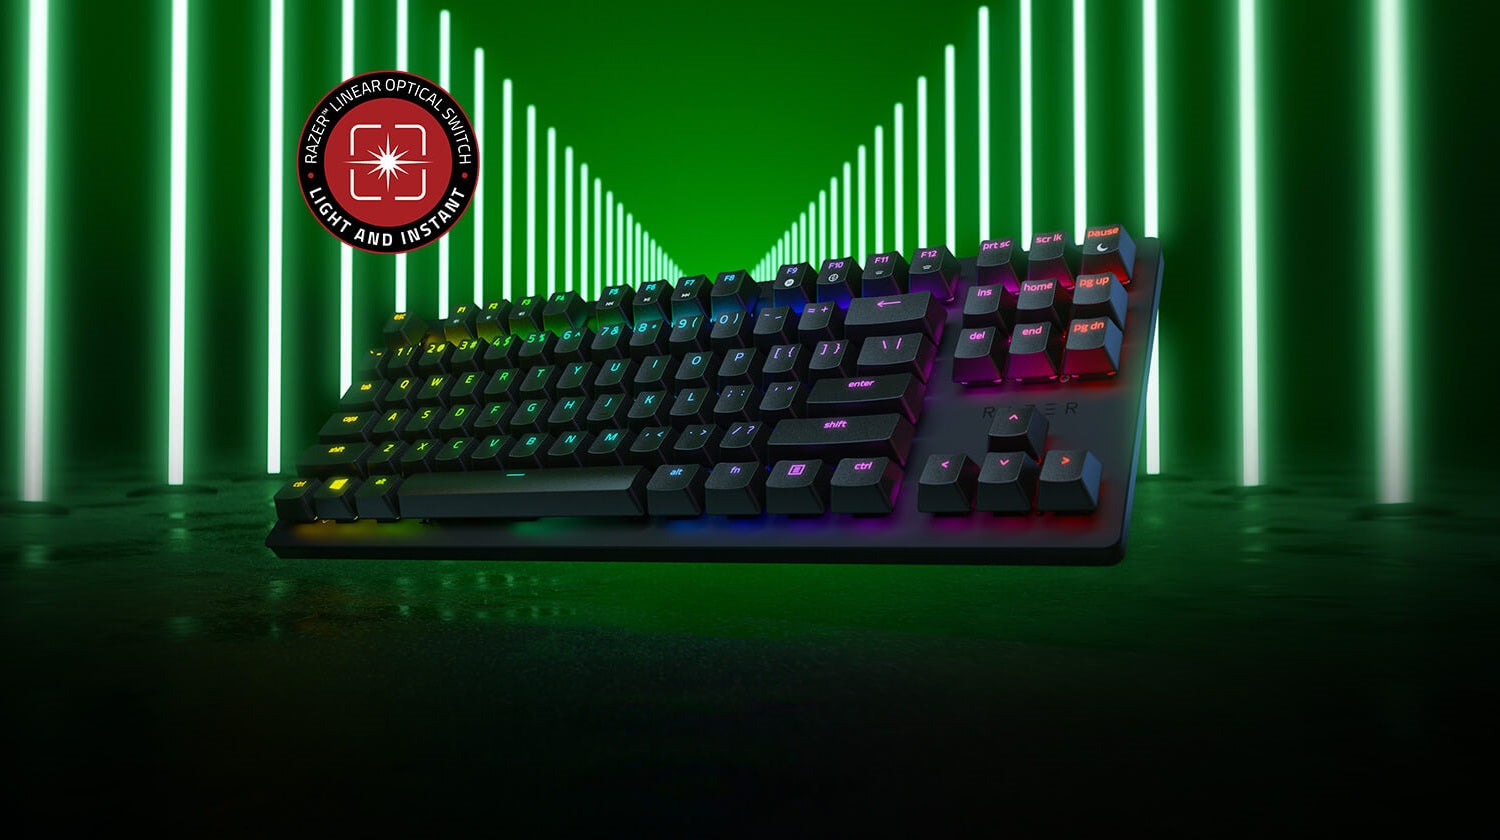 ABSOLUTE SPEED - When a split second can mean the difference between victory and defeat, the absolute speed of the Razer Huntsman Tournament Edition is what separates the champions from everyone else. Designed and tested by Team Razer athletes, this gaming keyboard is armed with the fastest Razer switches we've ever designed, to give you the edge you need to thrive where the competition is fiercest.